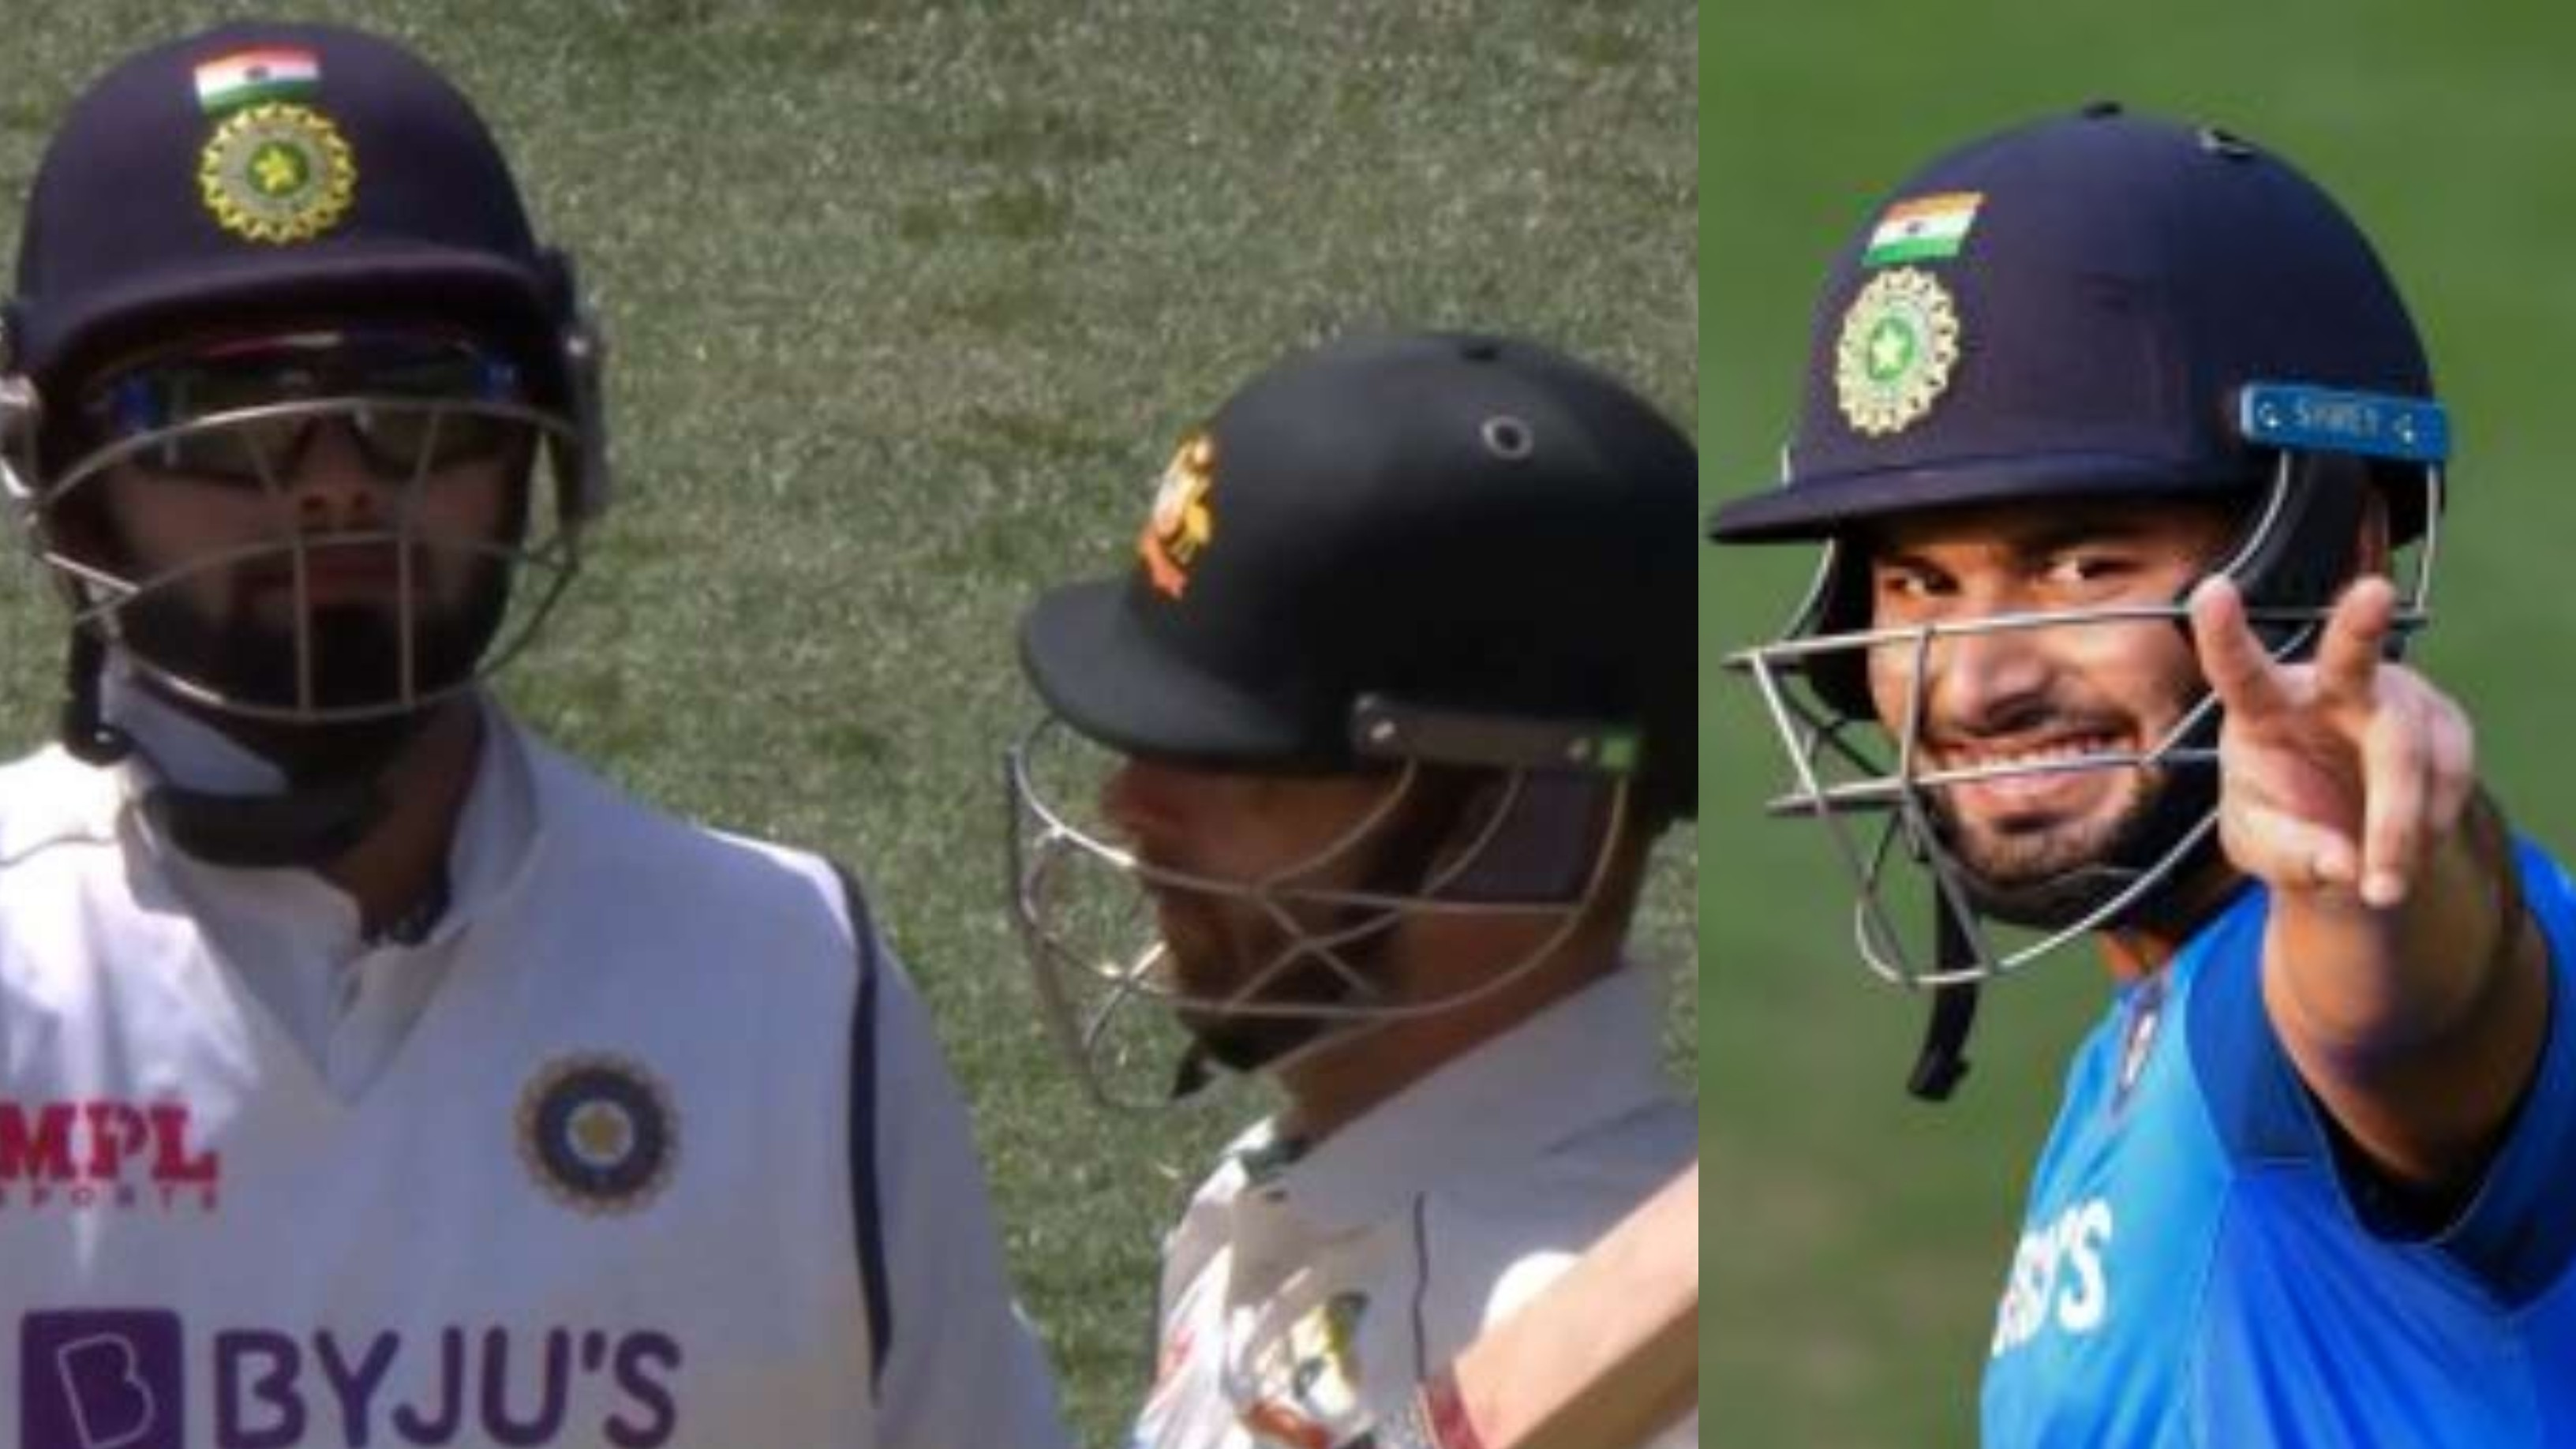 AUS v IND 2020-21: Rishabh Pant reveals why he didn't respond to Matthew Wade's sledging